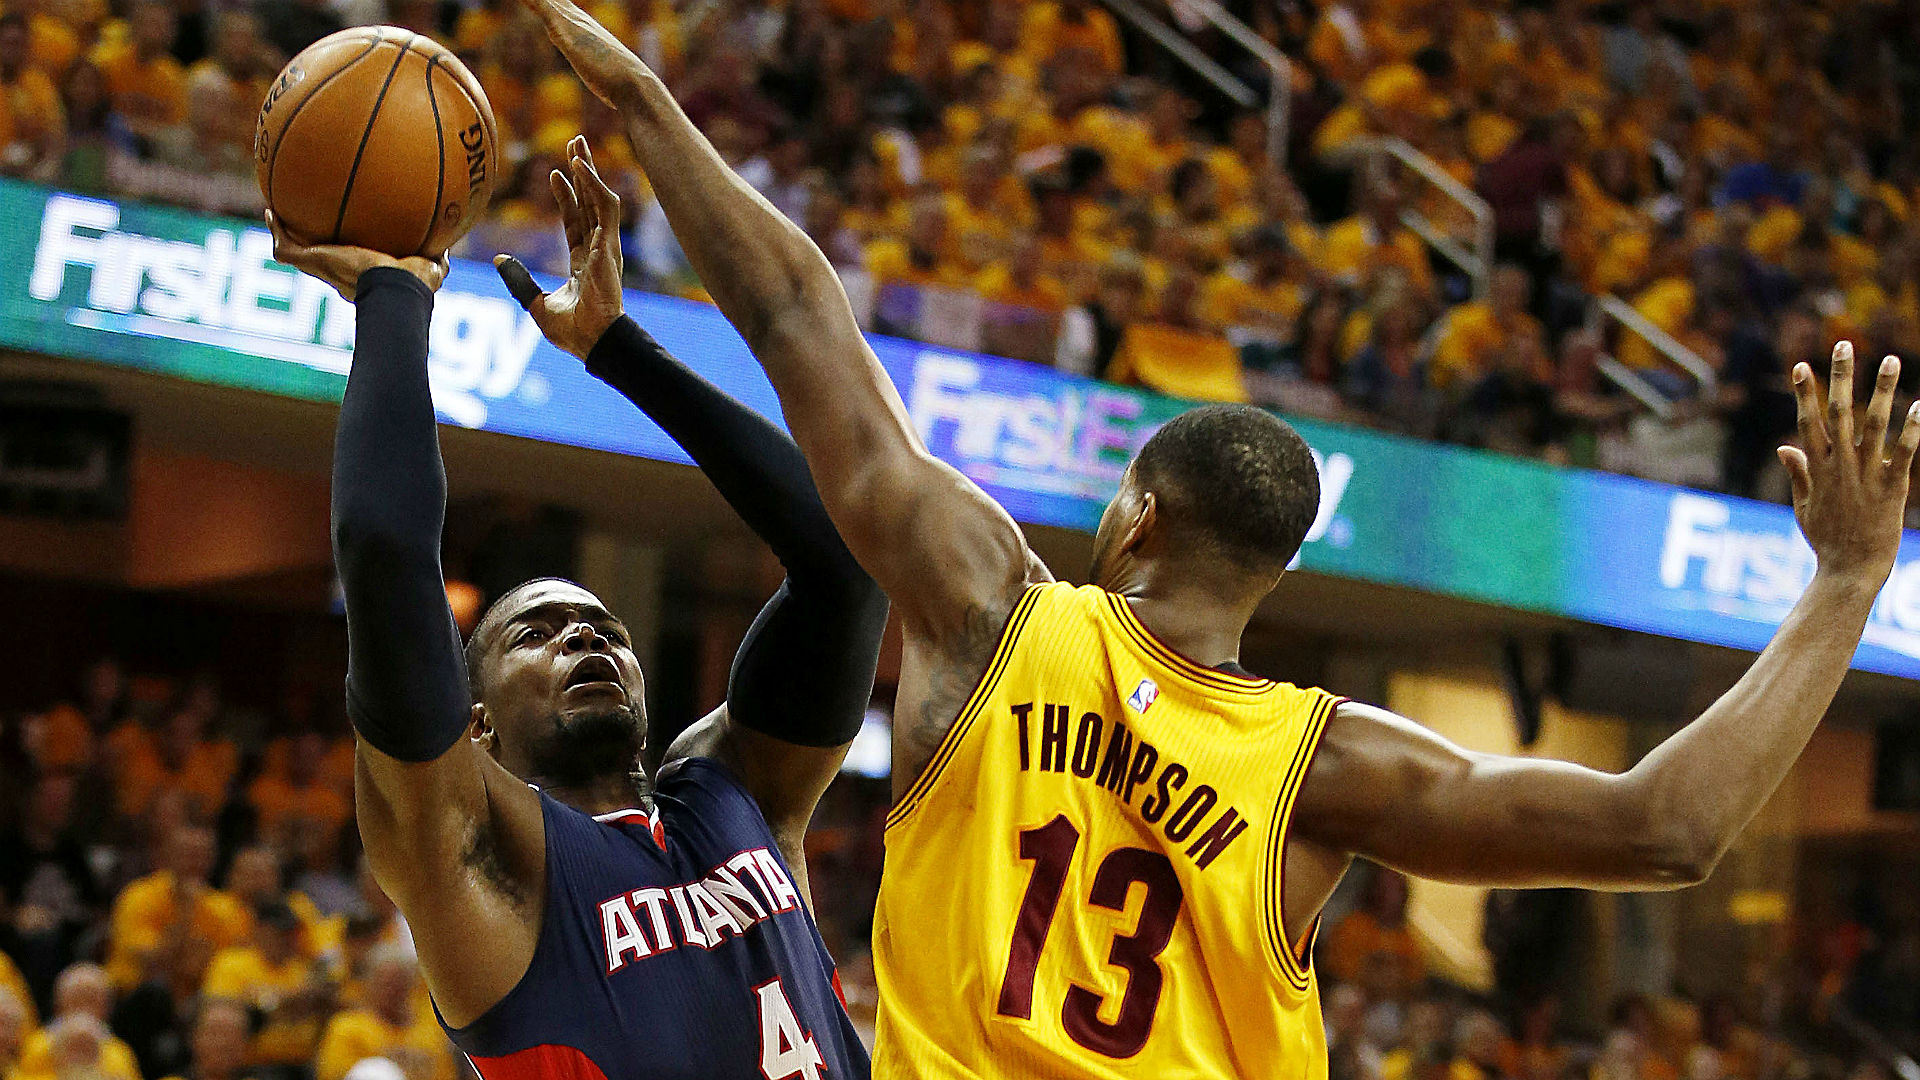 NBA pick of the day – AccuScore predicts Hawks vs. Cavs Game 4